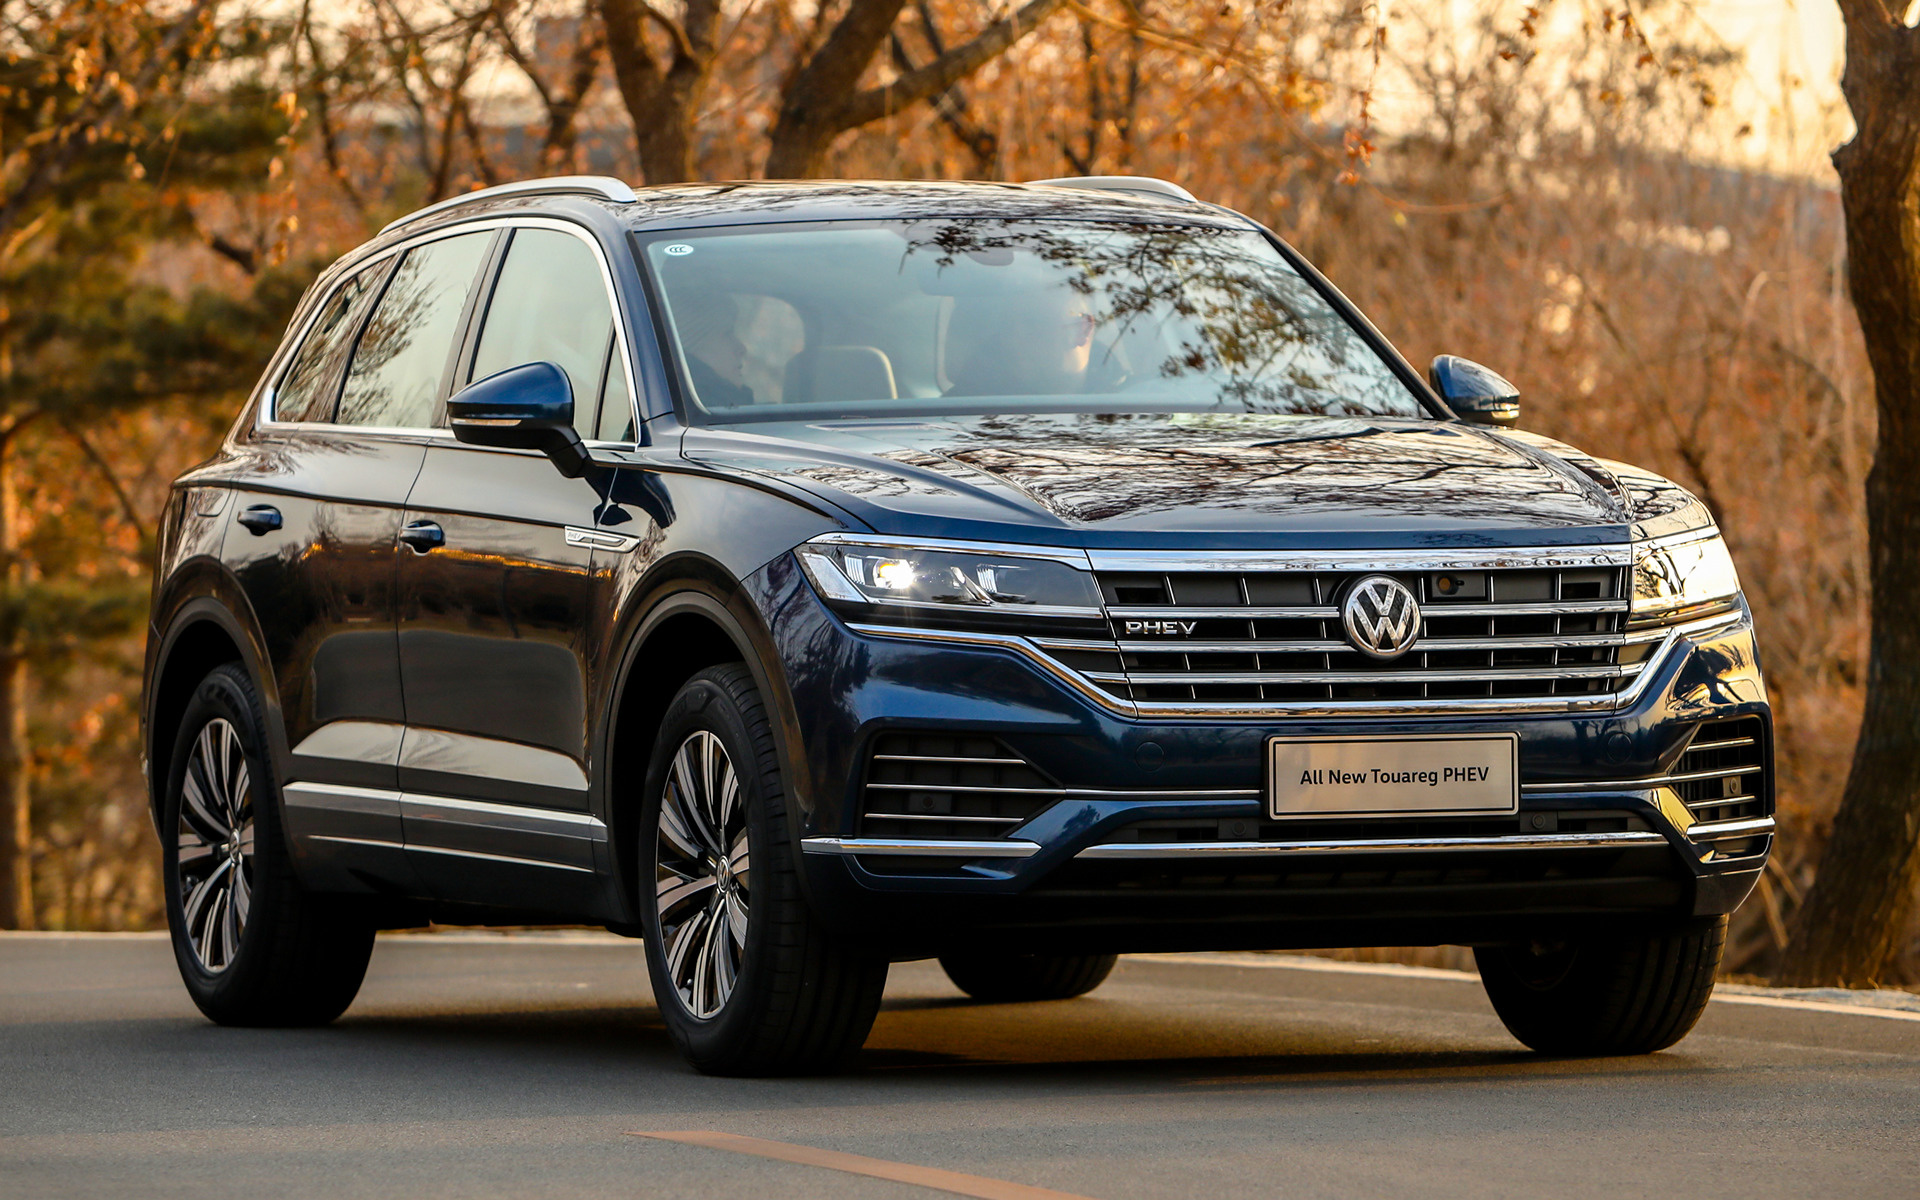 2019 Volkswagen Touareg PHEV CN   Wallpapers and HD Images Car 1920x1200